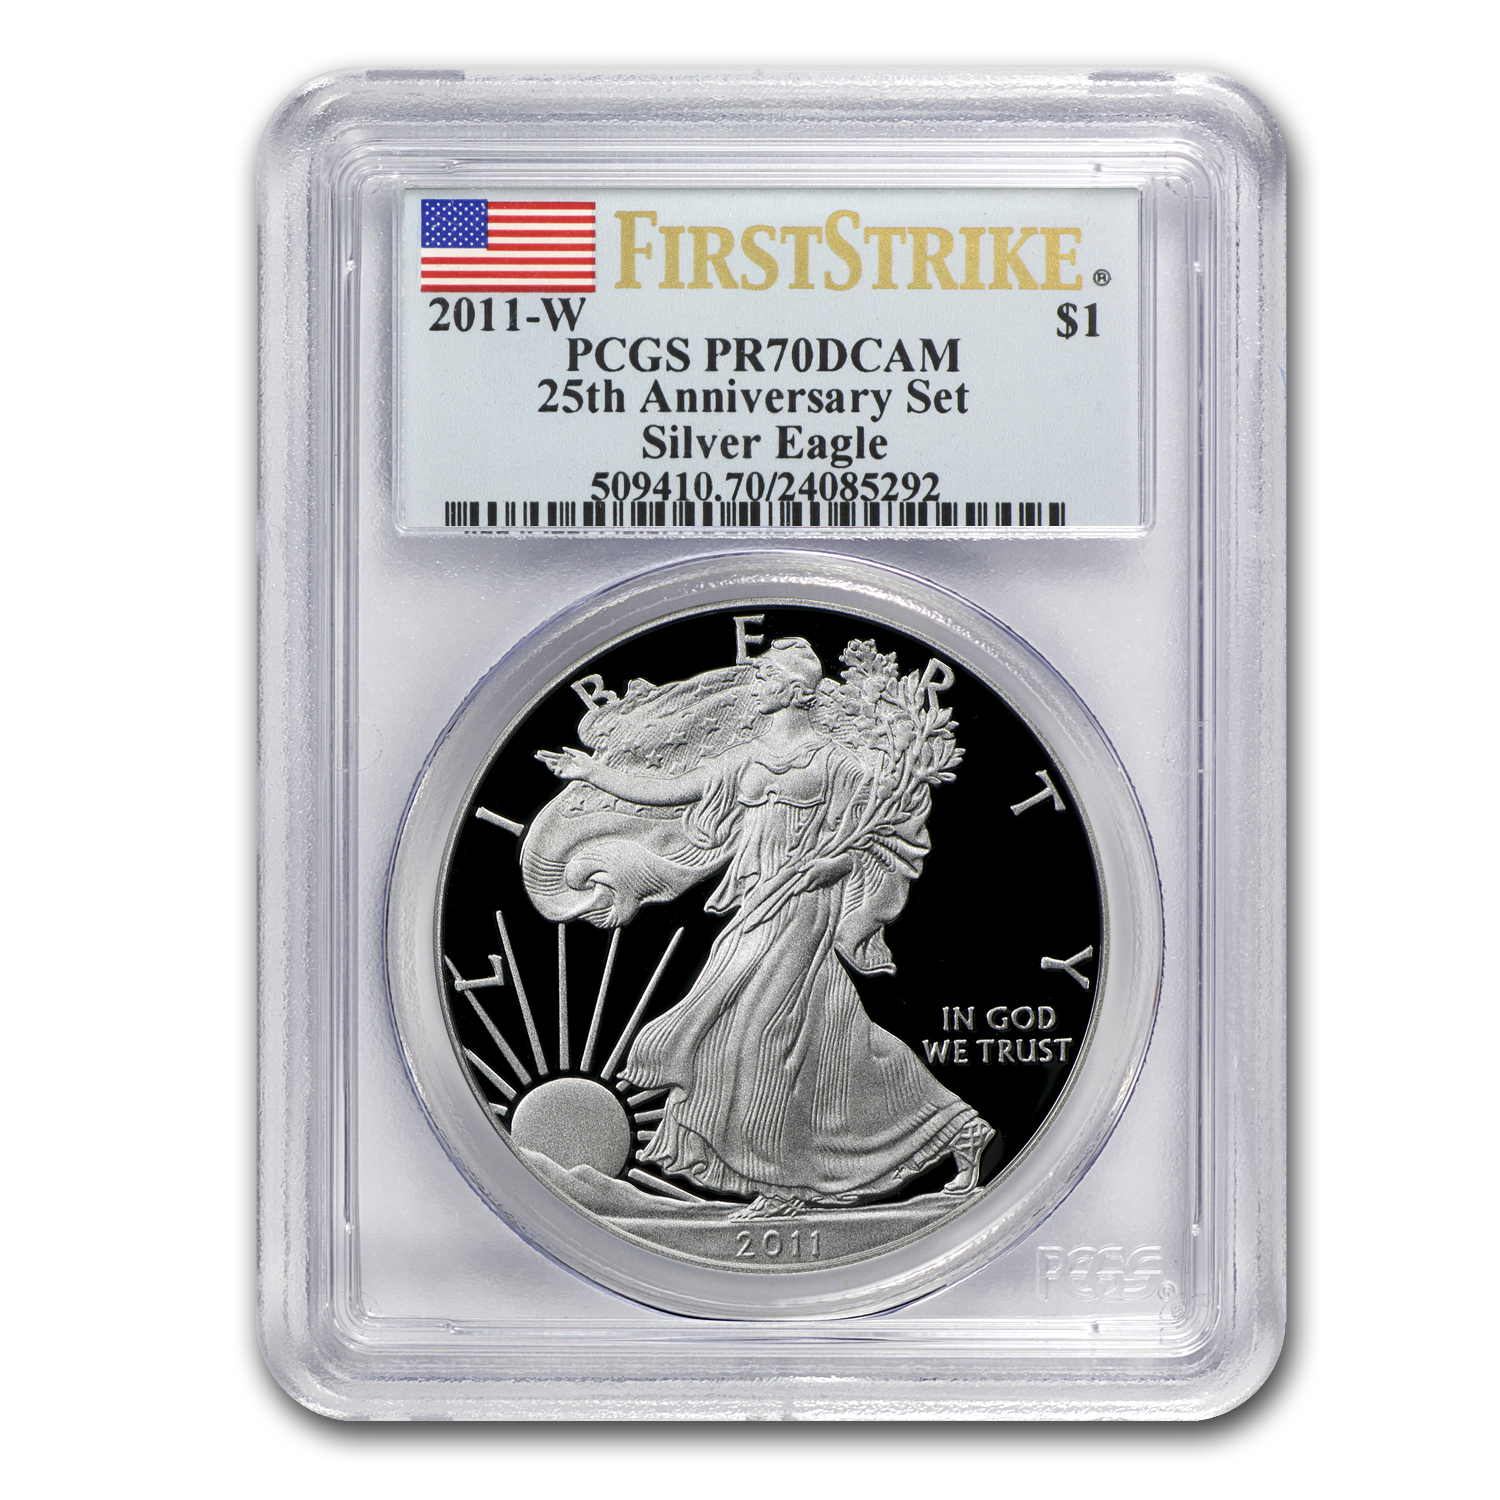 2011-W Proof Silver Eagle PR-70 PCGS (FS, 25th Anniv, Blue Label)